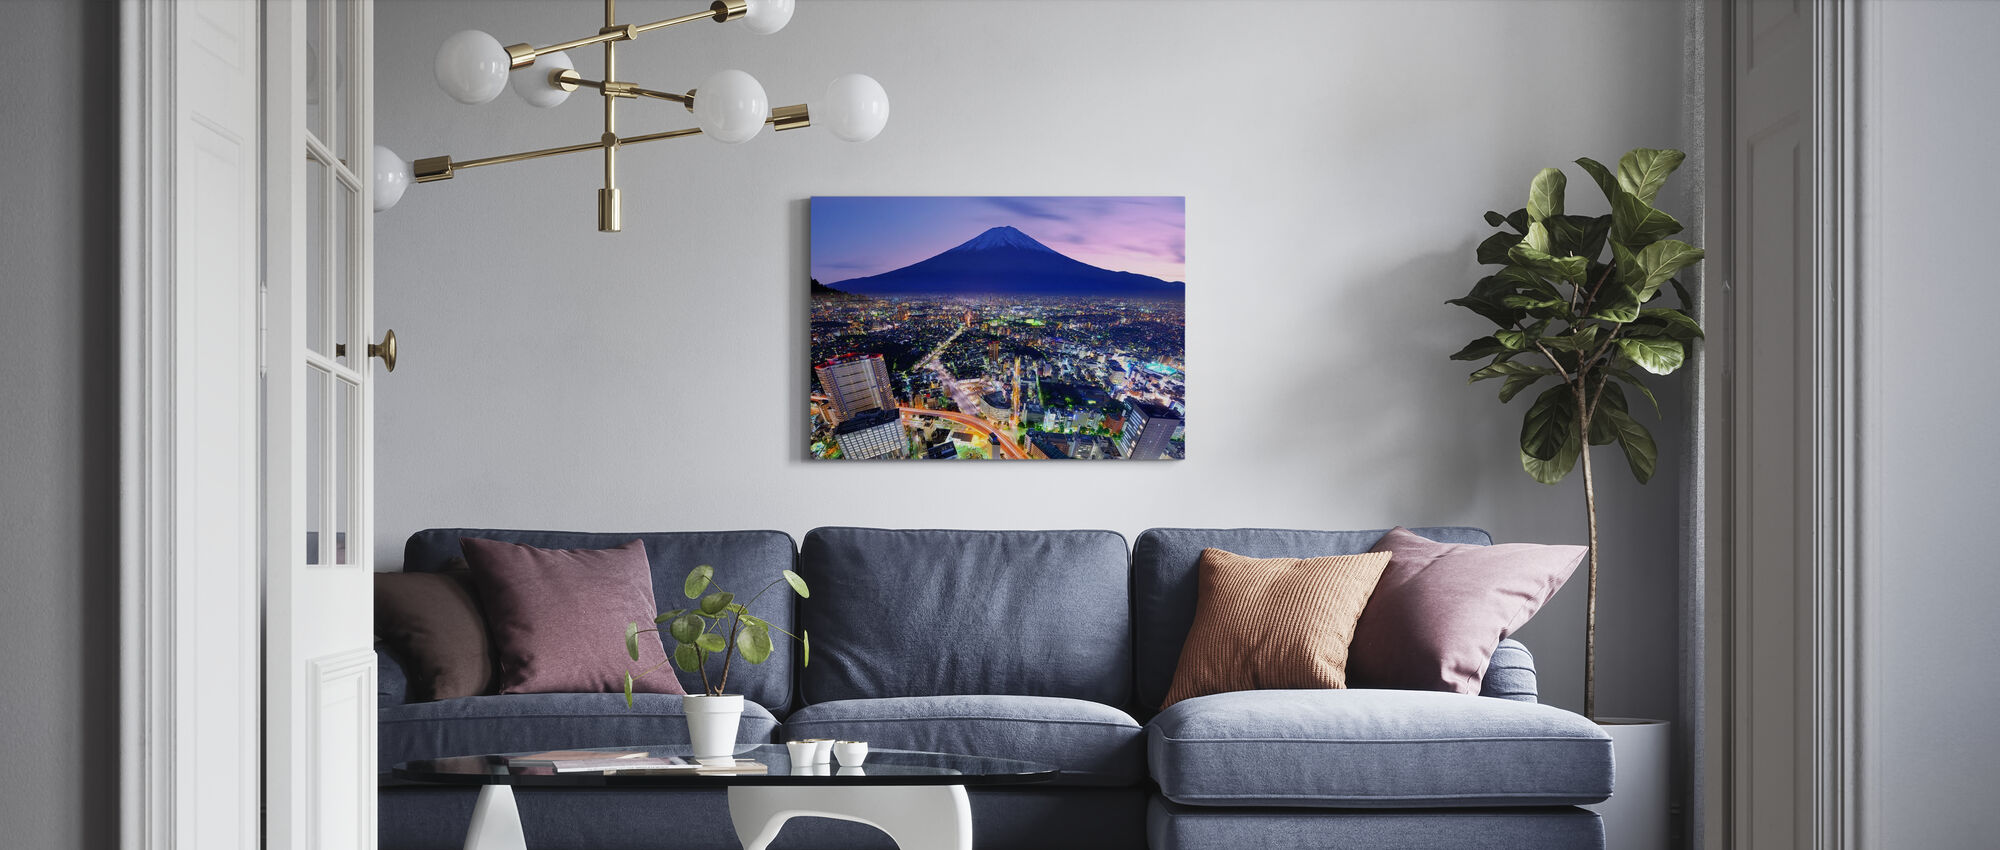 Ueno District and Mt. Fuji in Tokyo, Japan - Canvas print - Living Room